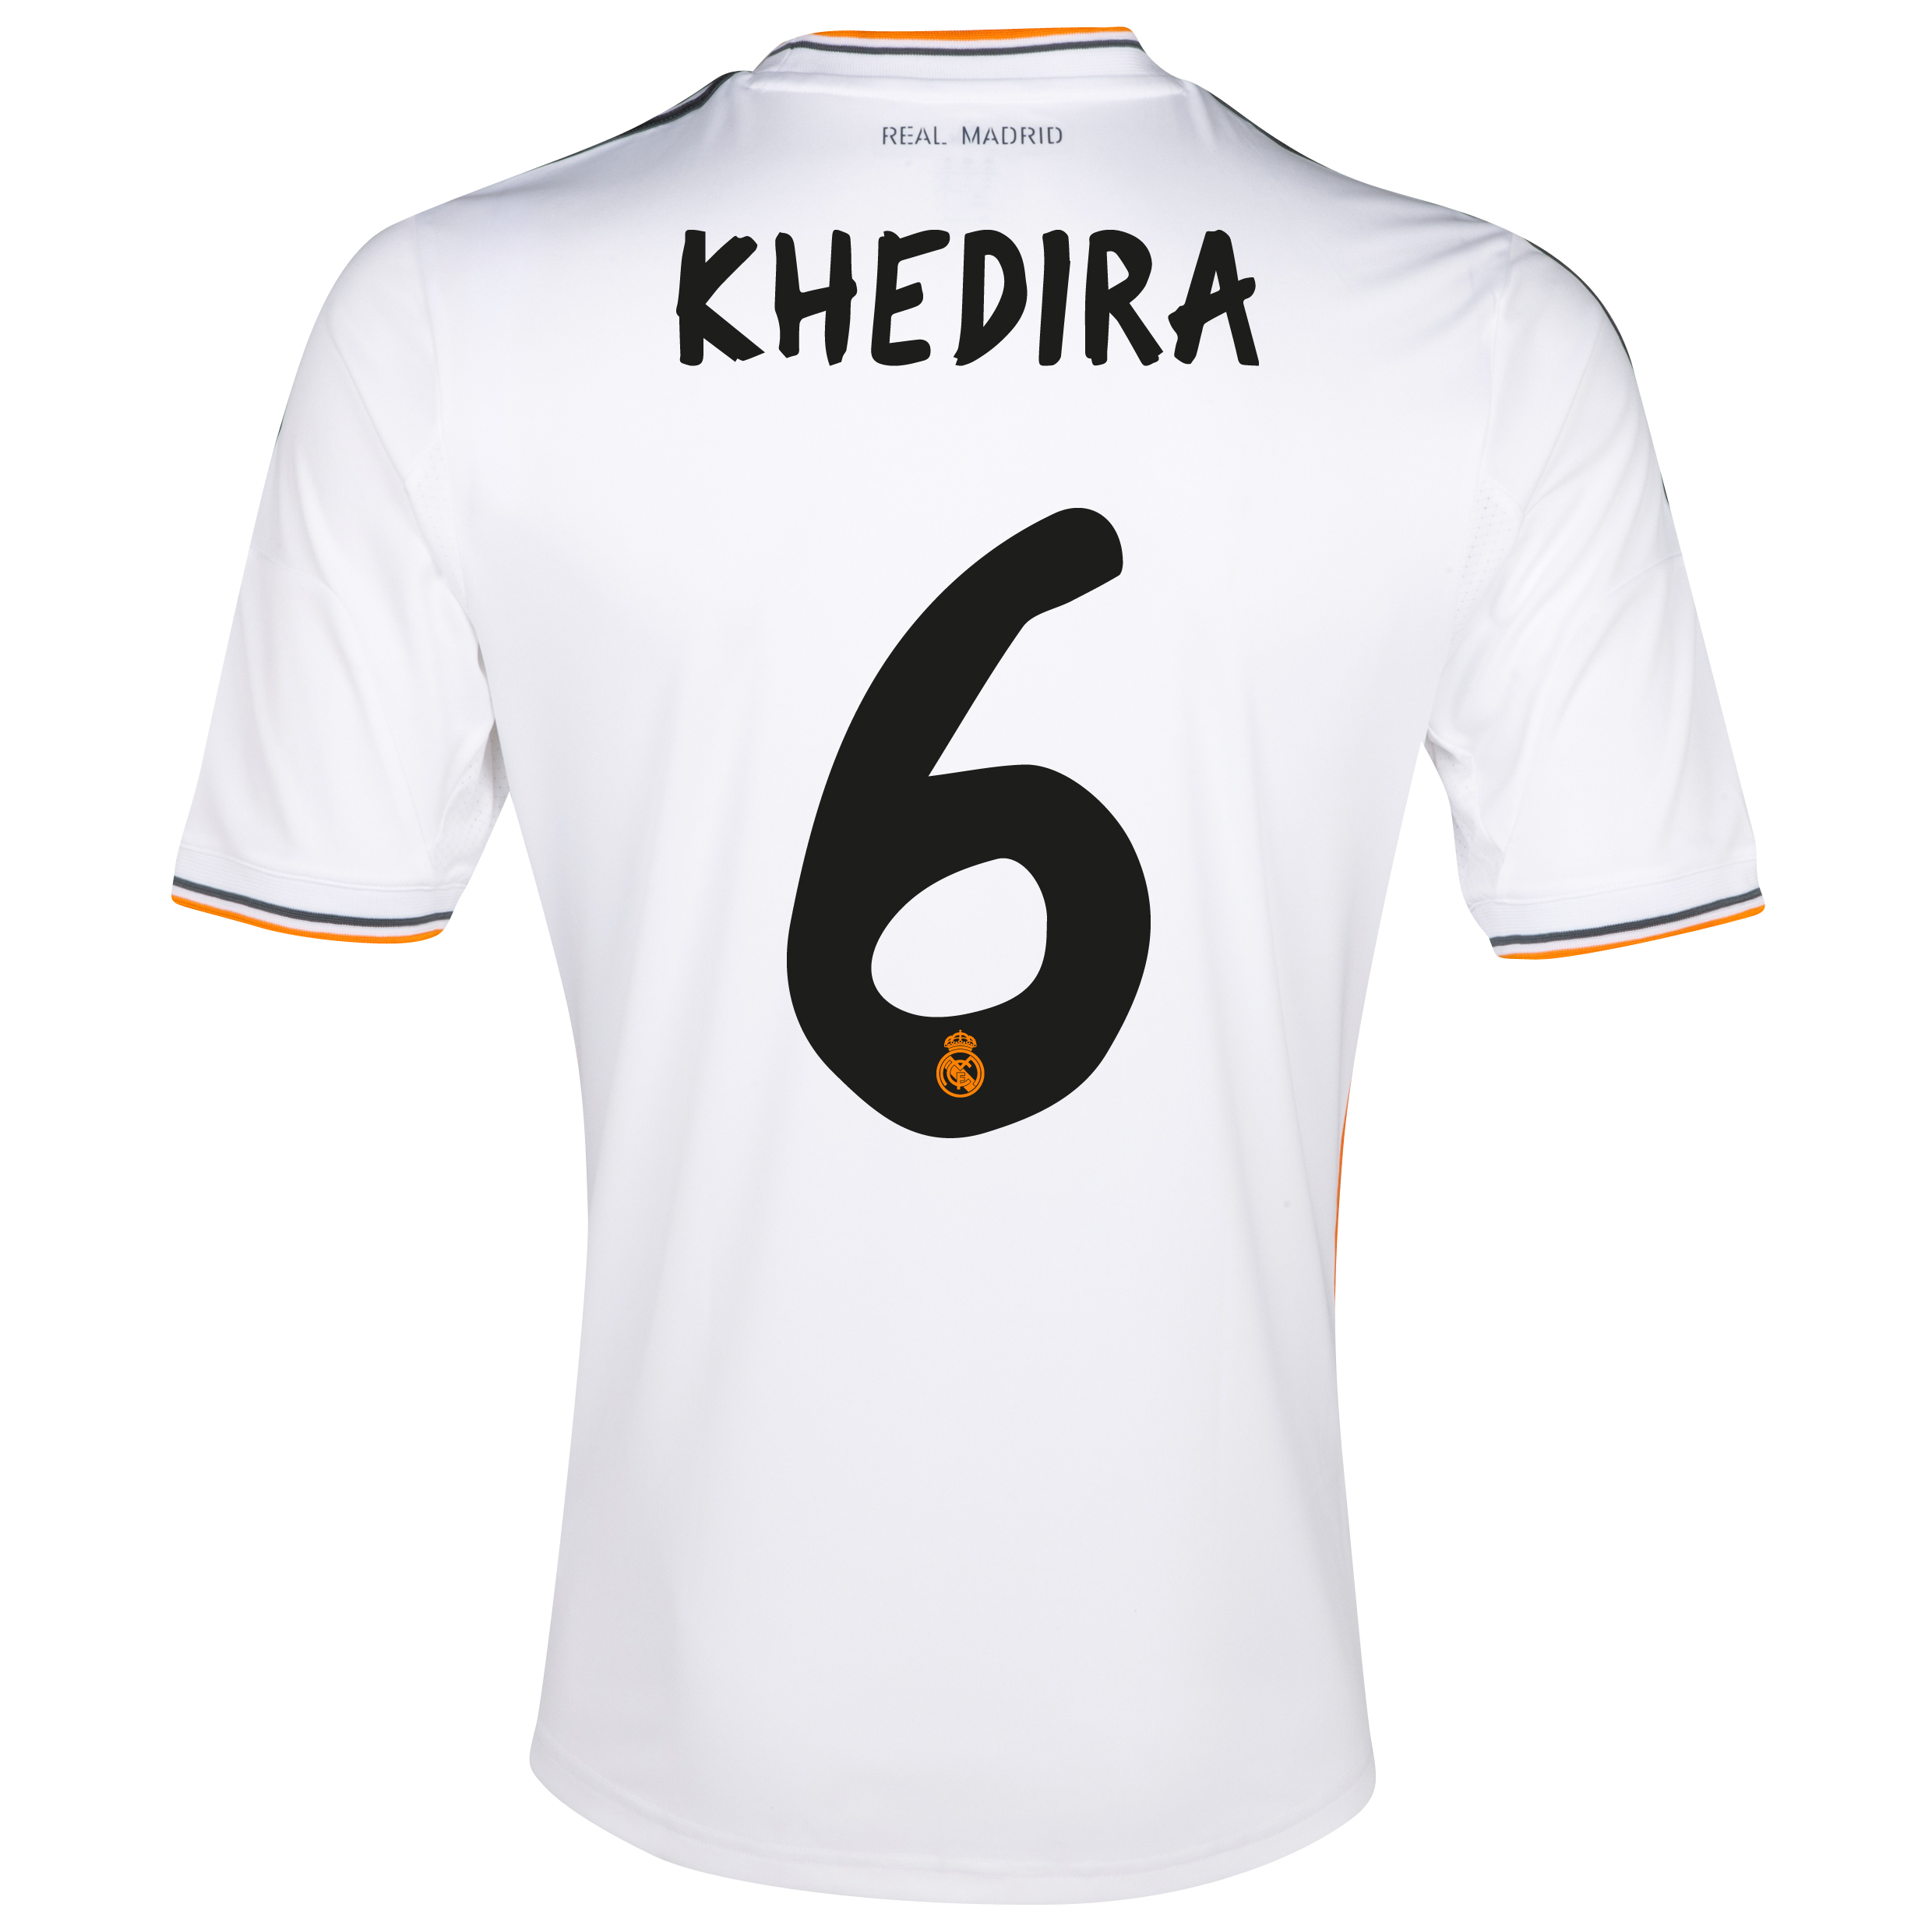 Real Madrid Home Shirt 2013/14 with Khedira 6 printing